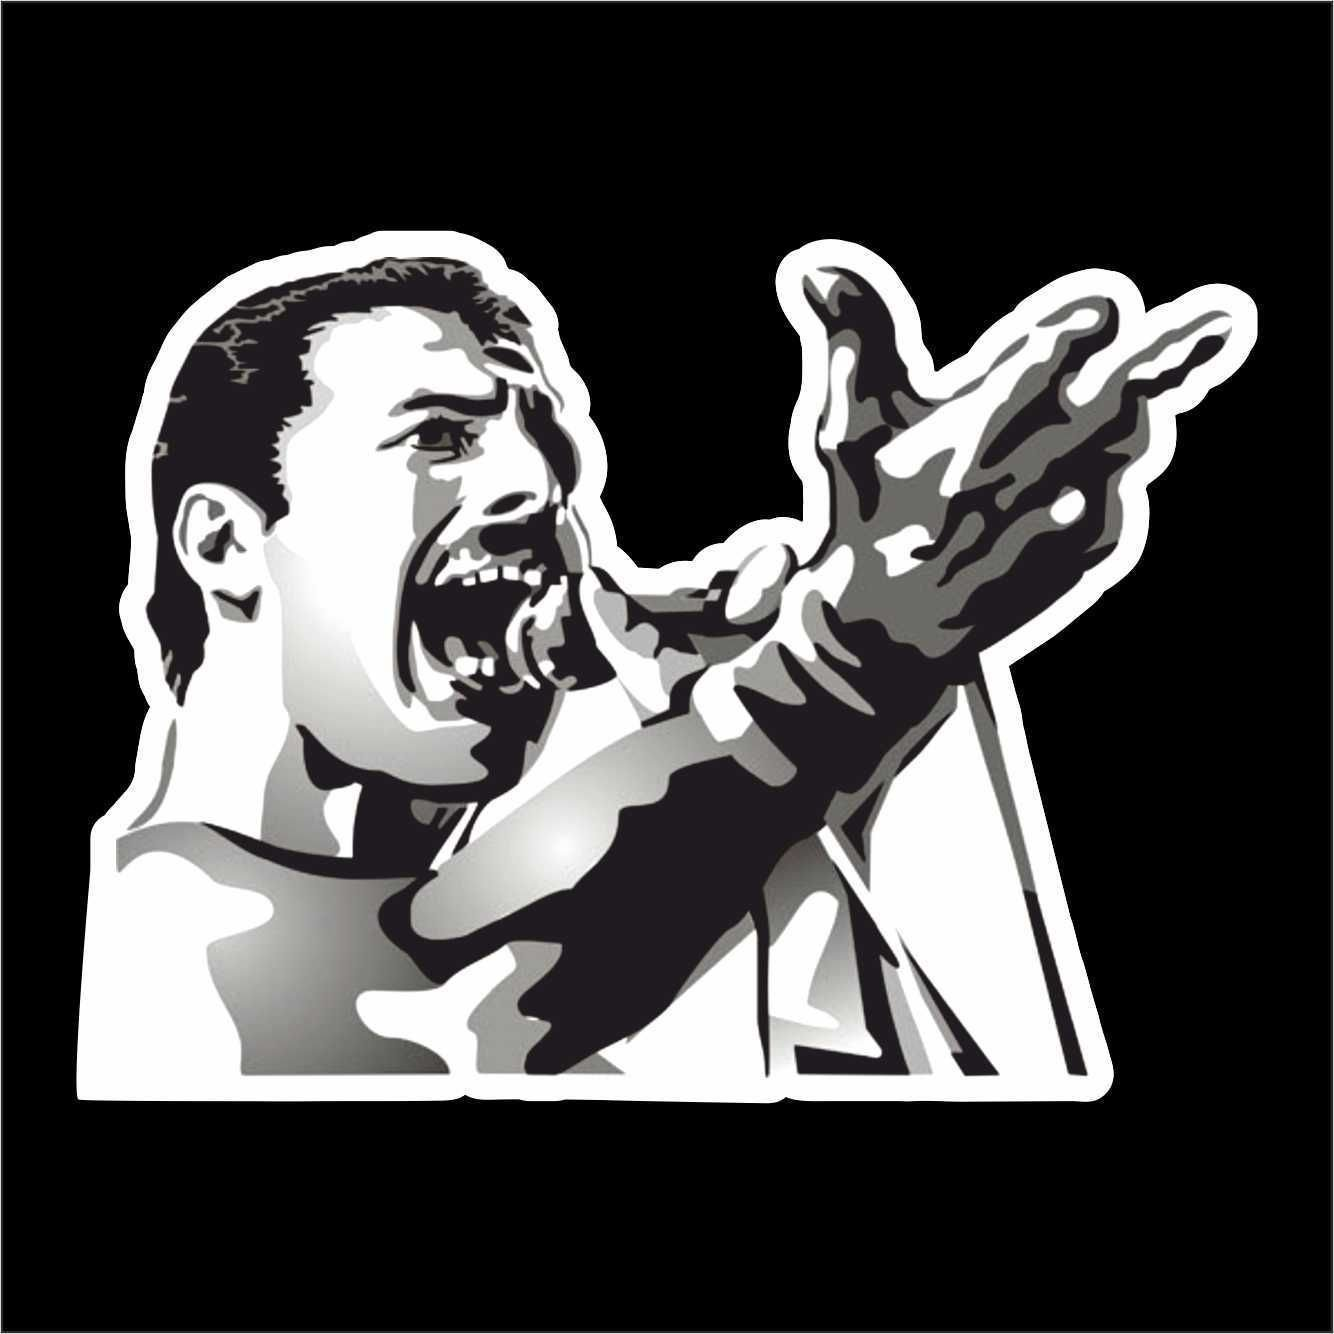 Aufkleber Sticker Queen Freddie Mercury hip hop rap jazz hard rock pop funk sticker